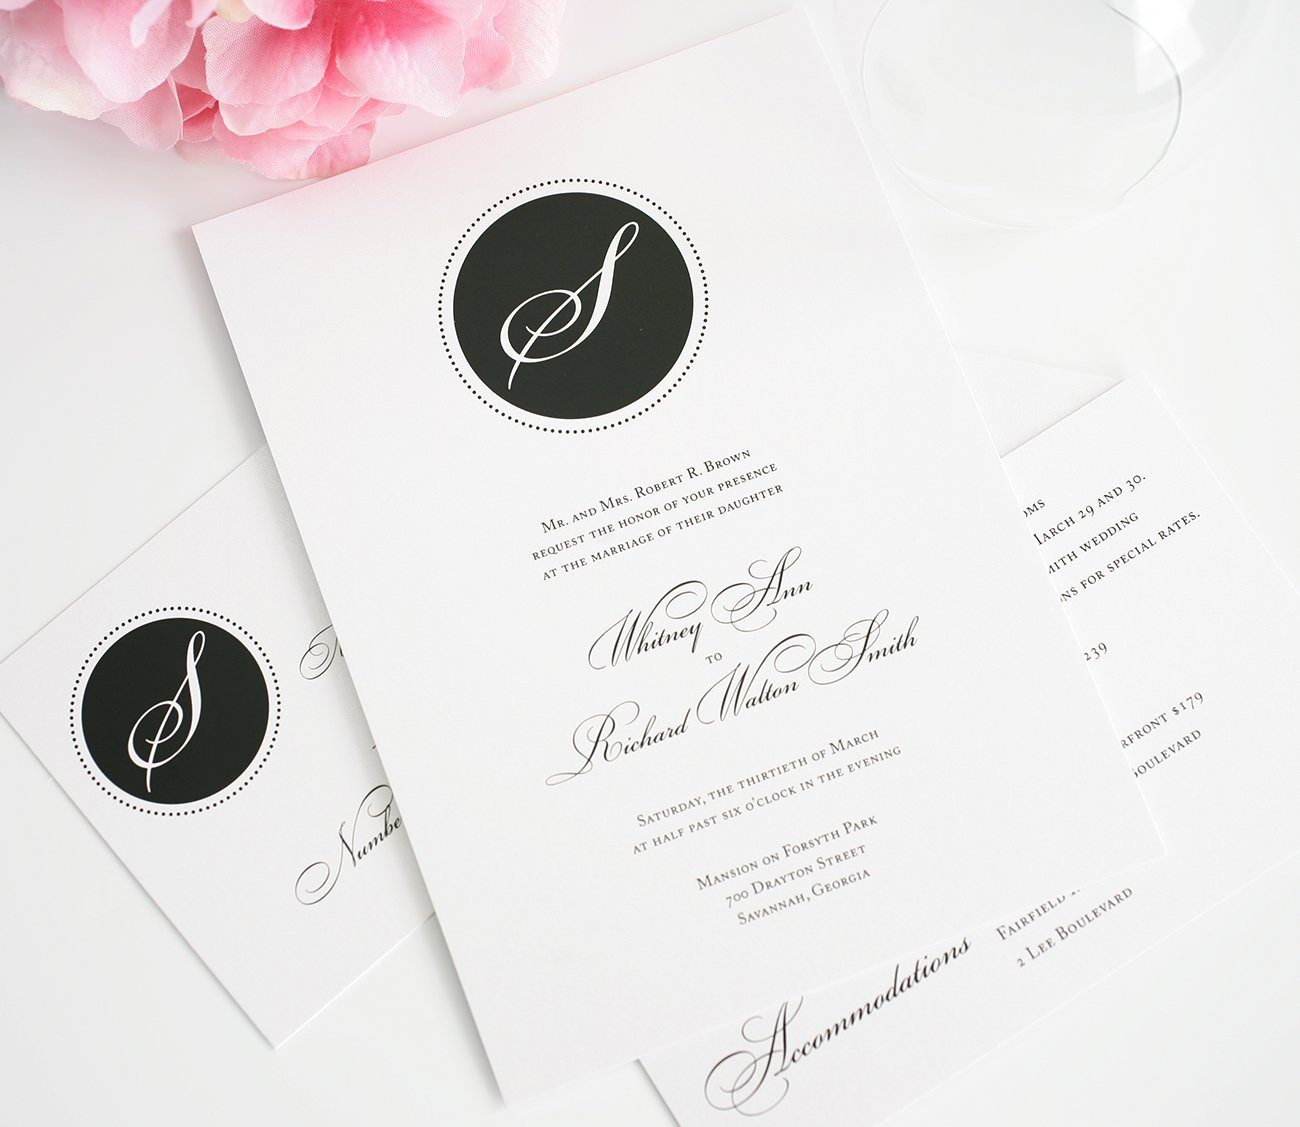 Wedding Invitations with Black Monogram